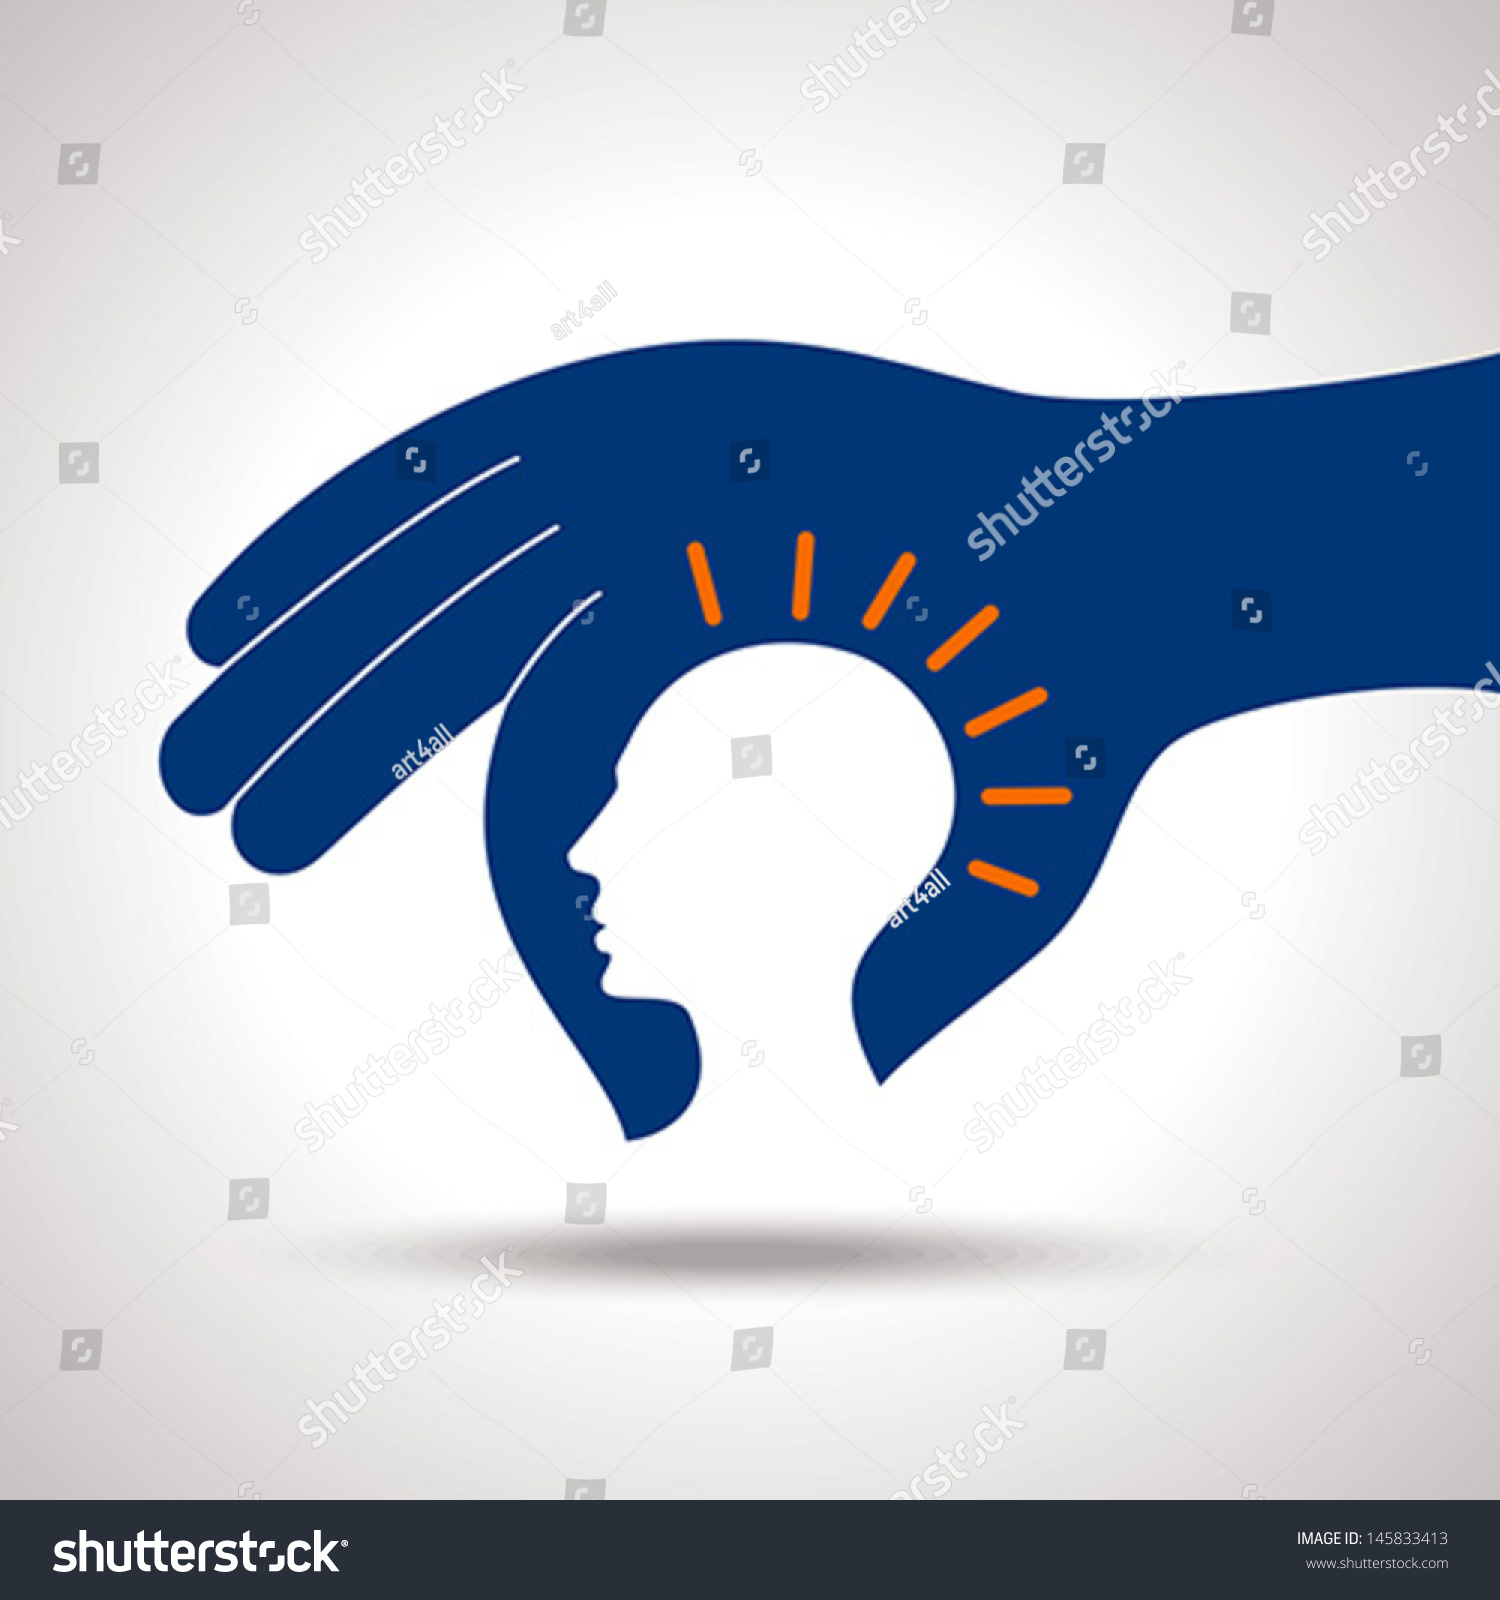 Human head thinking a new idea stock vector illustration for New idea images